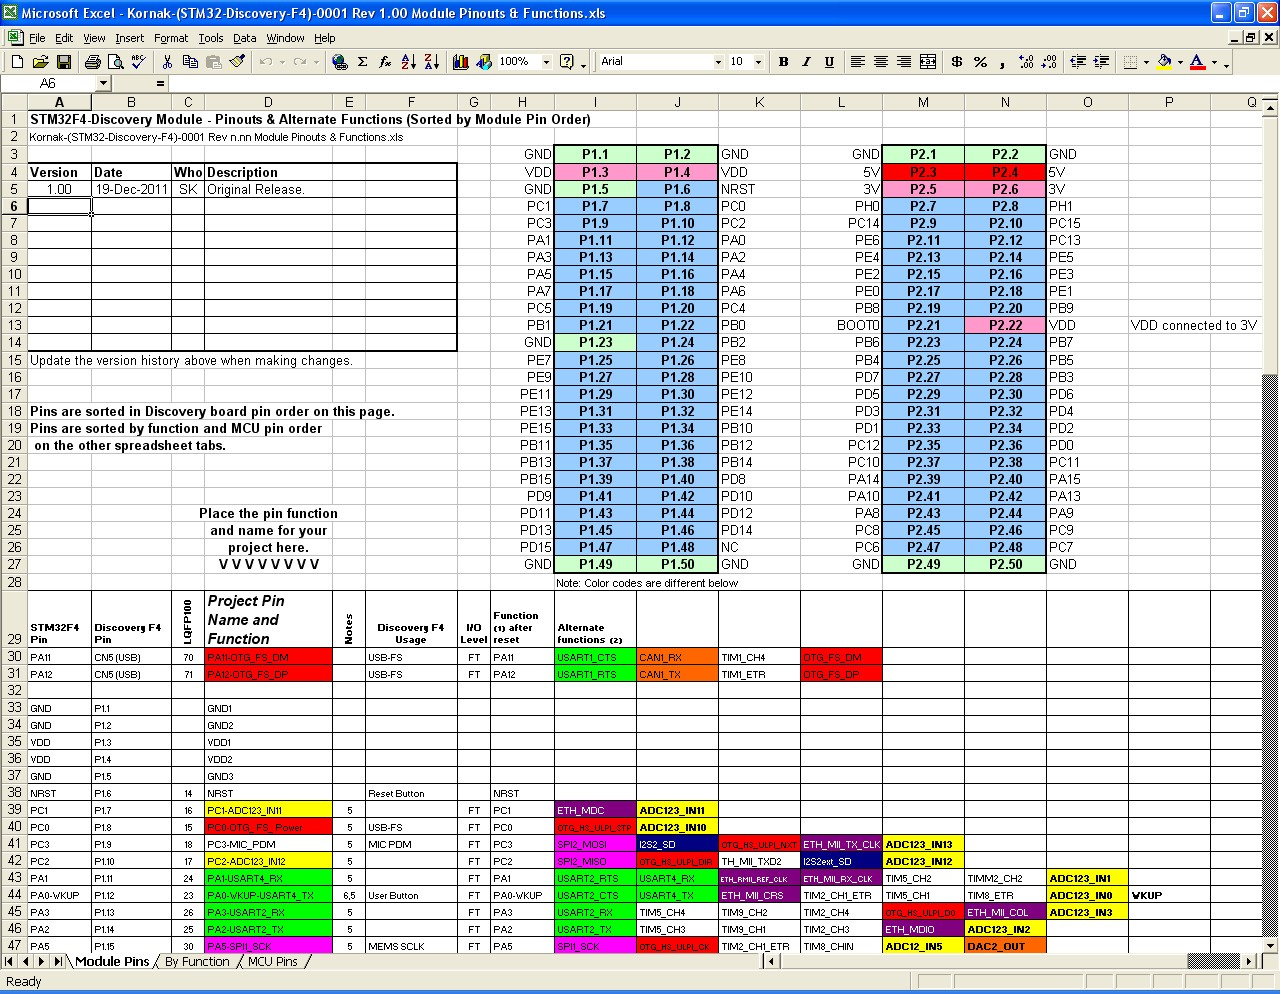 Scot Kornak S Protoblog A Pinout Spreadsheet For The Stm32f4 Discovery